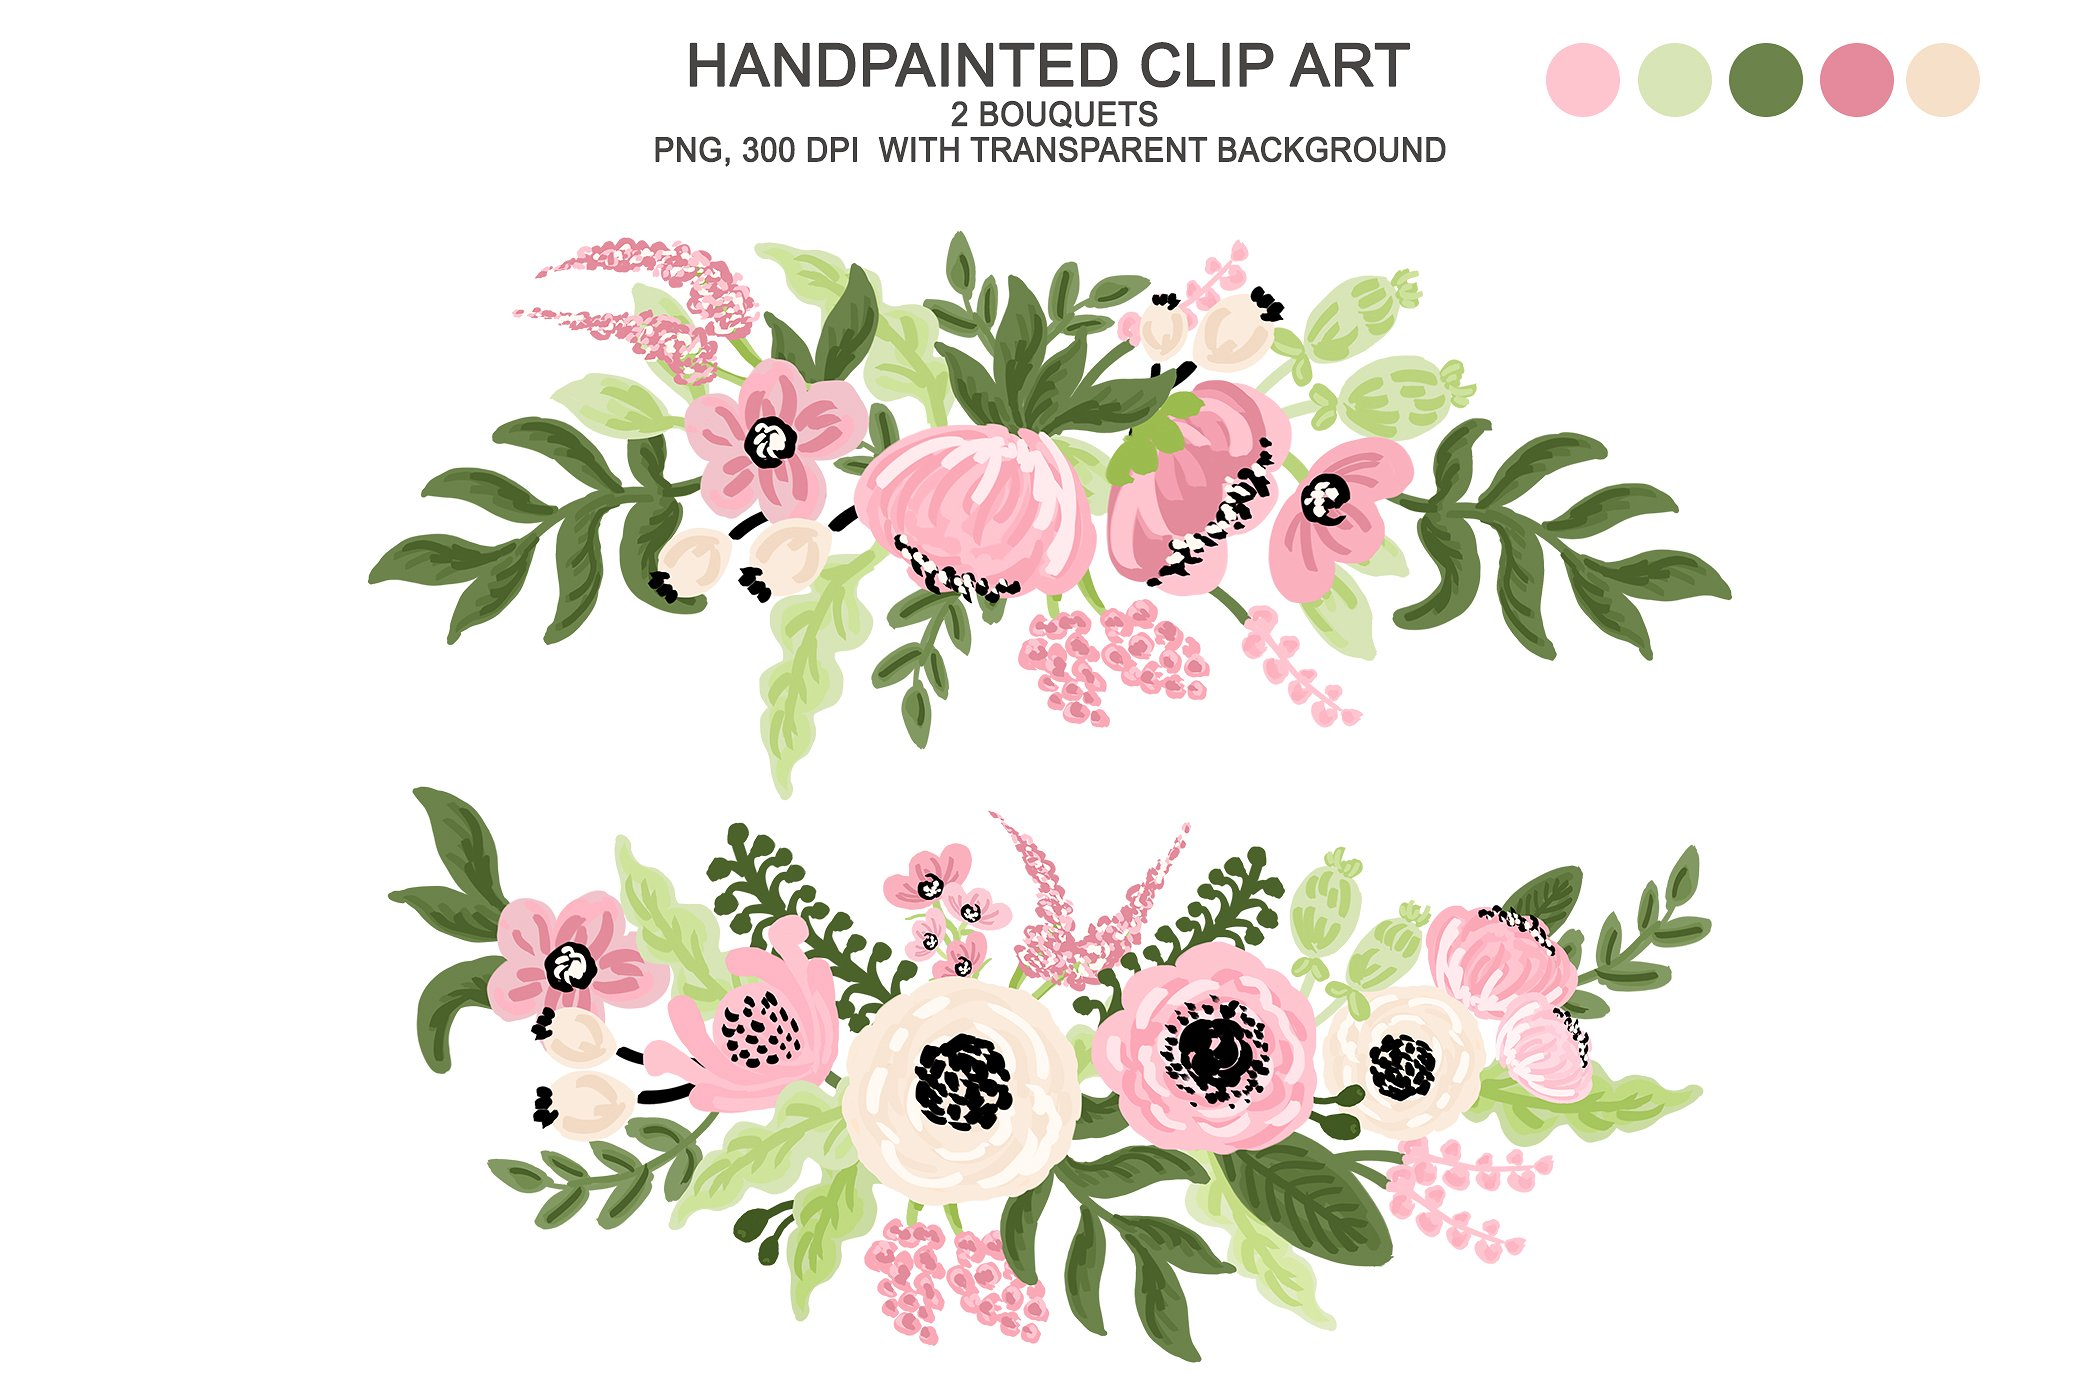 Digital watercolor flower illustrations. Floral clipart